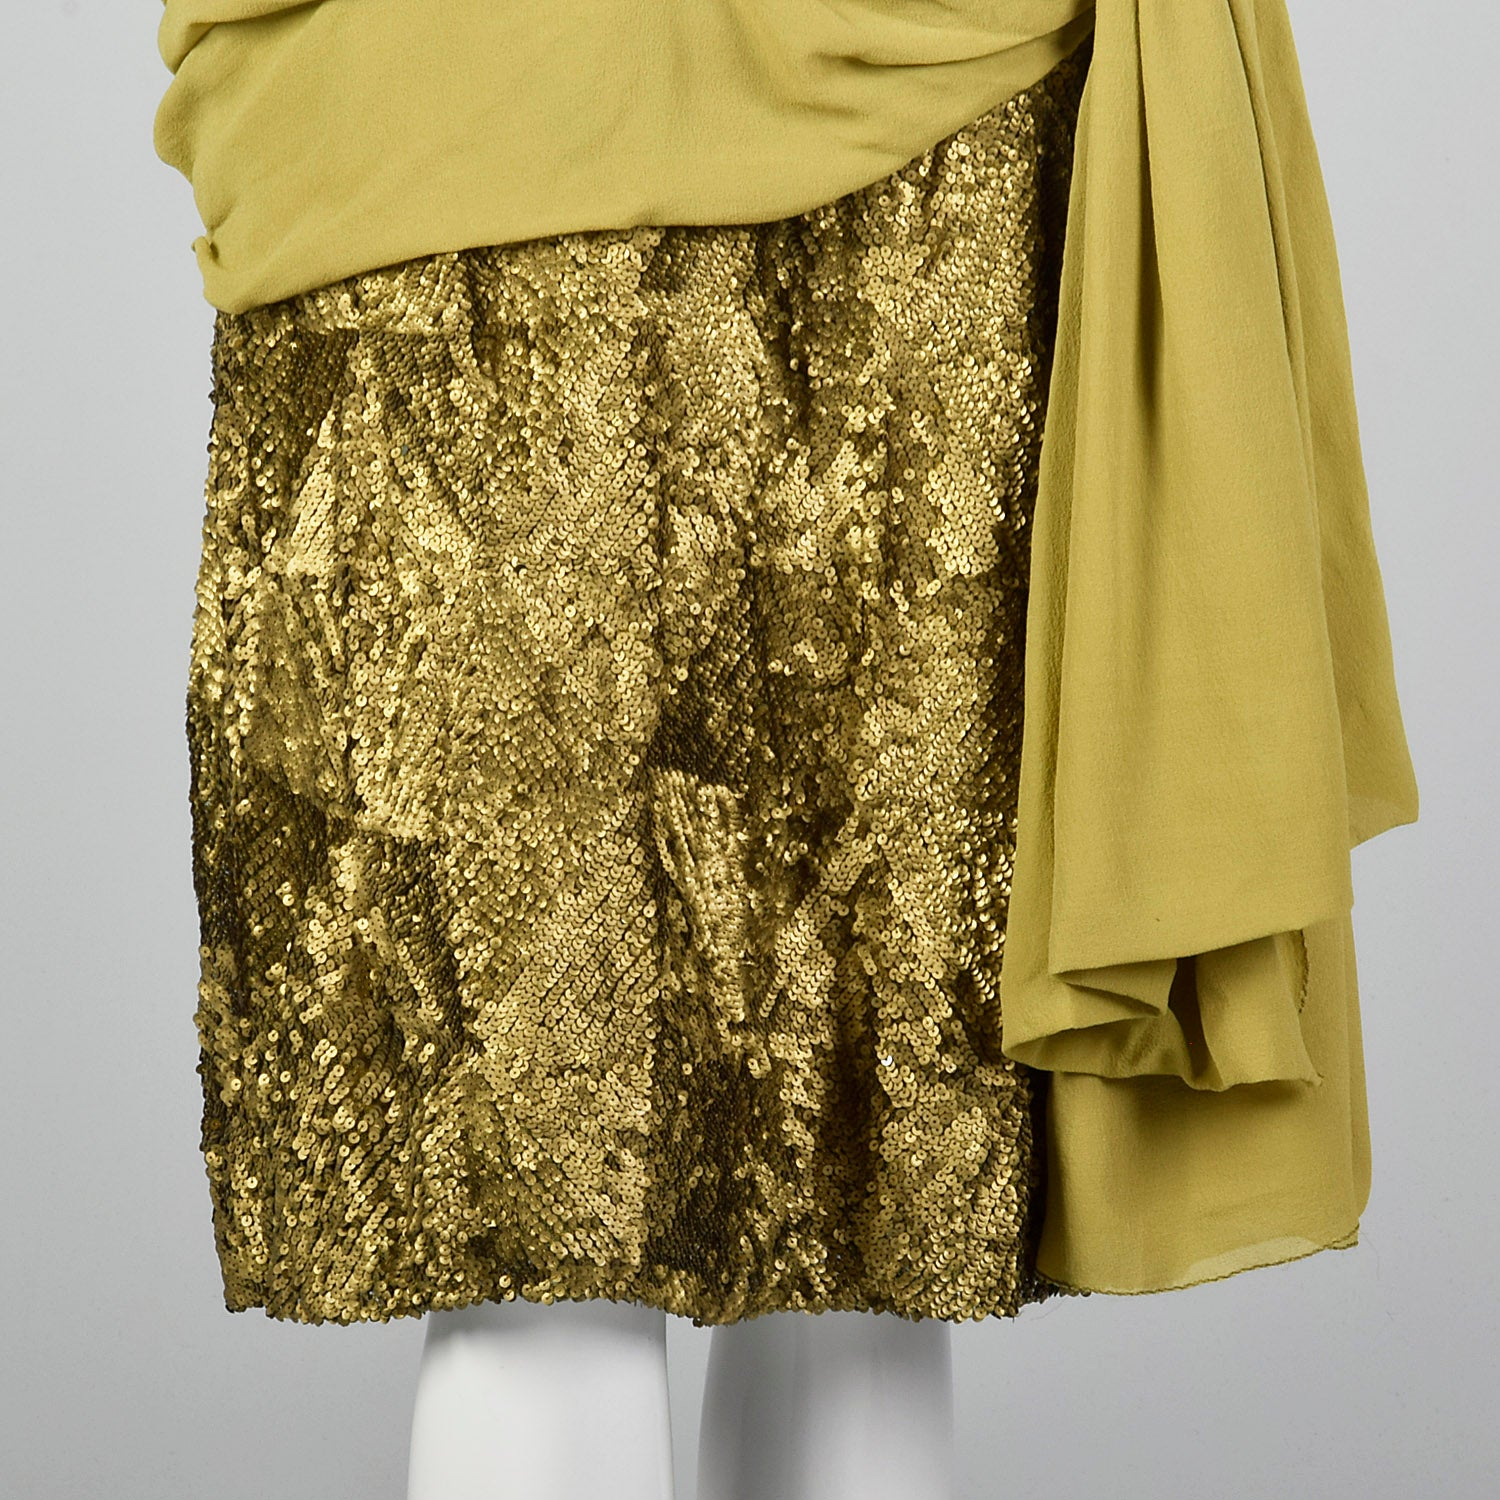 1920s Silk Dress with Gold Sequins and Gold Lamé Trim